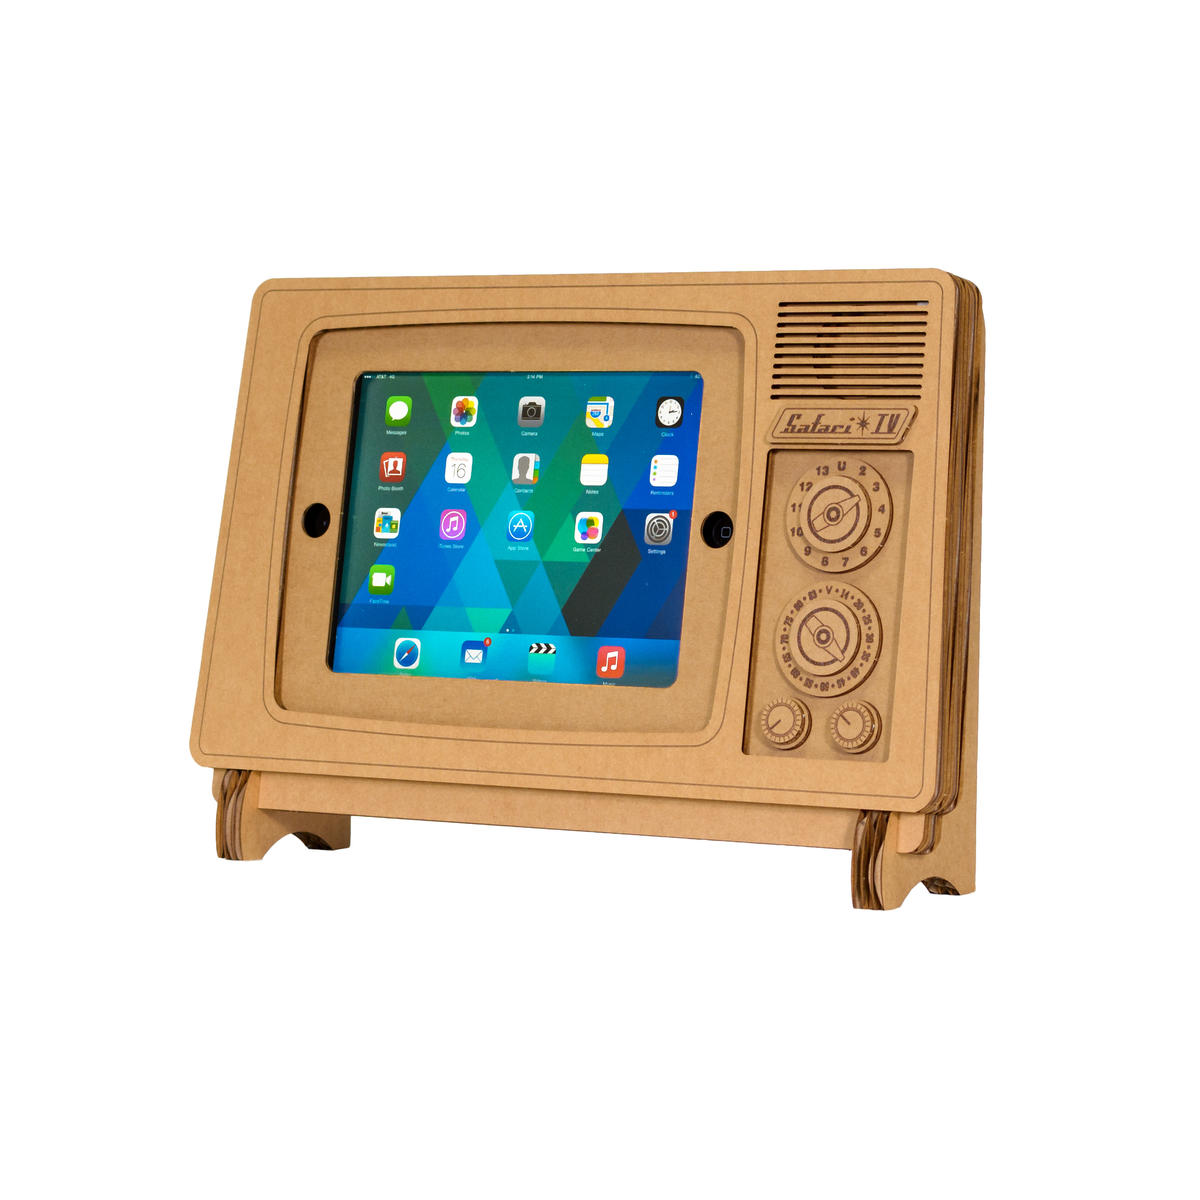 Safari TV Cardboard iPad Stand